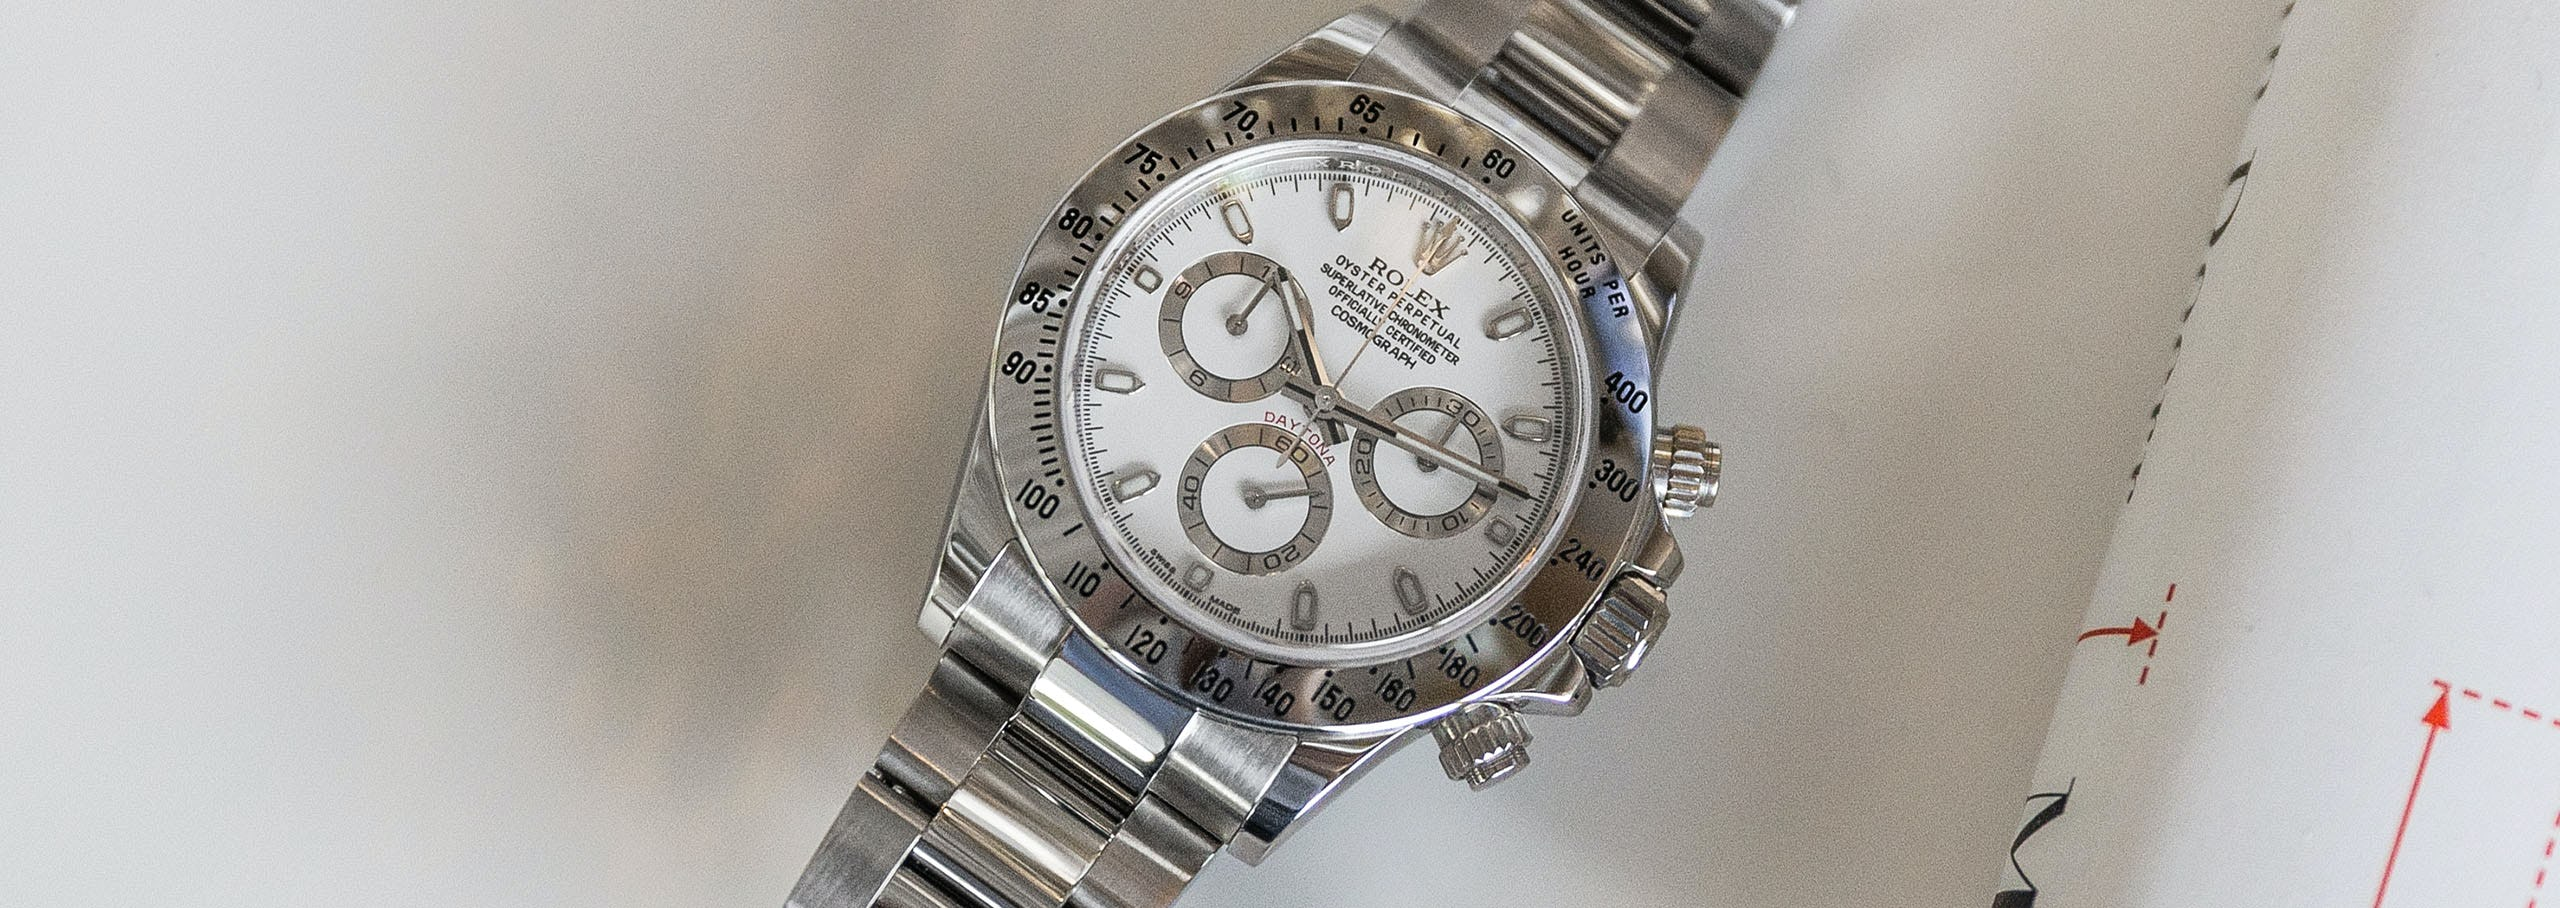 Rare and Revered Rolex Models